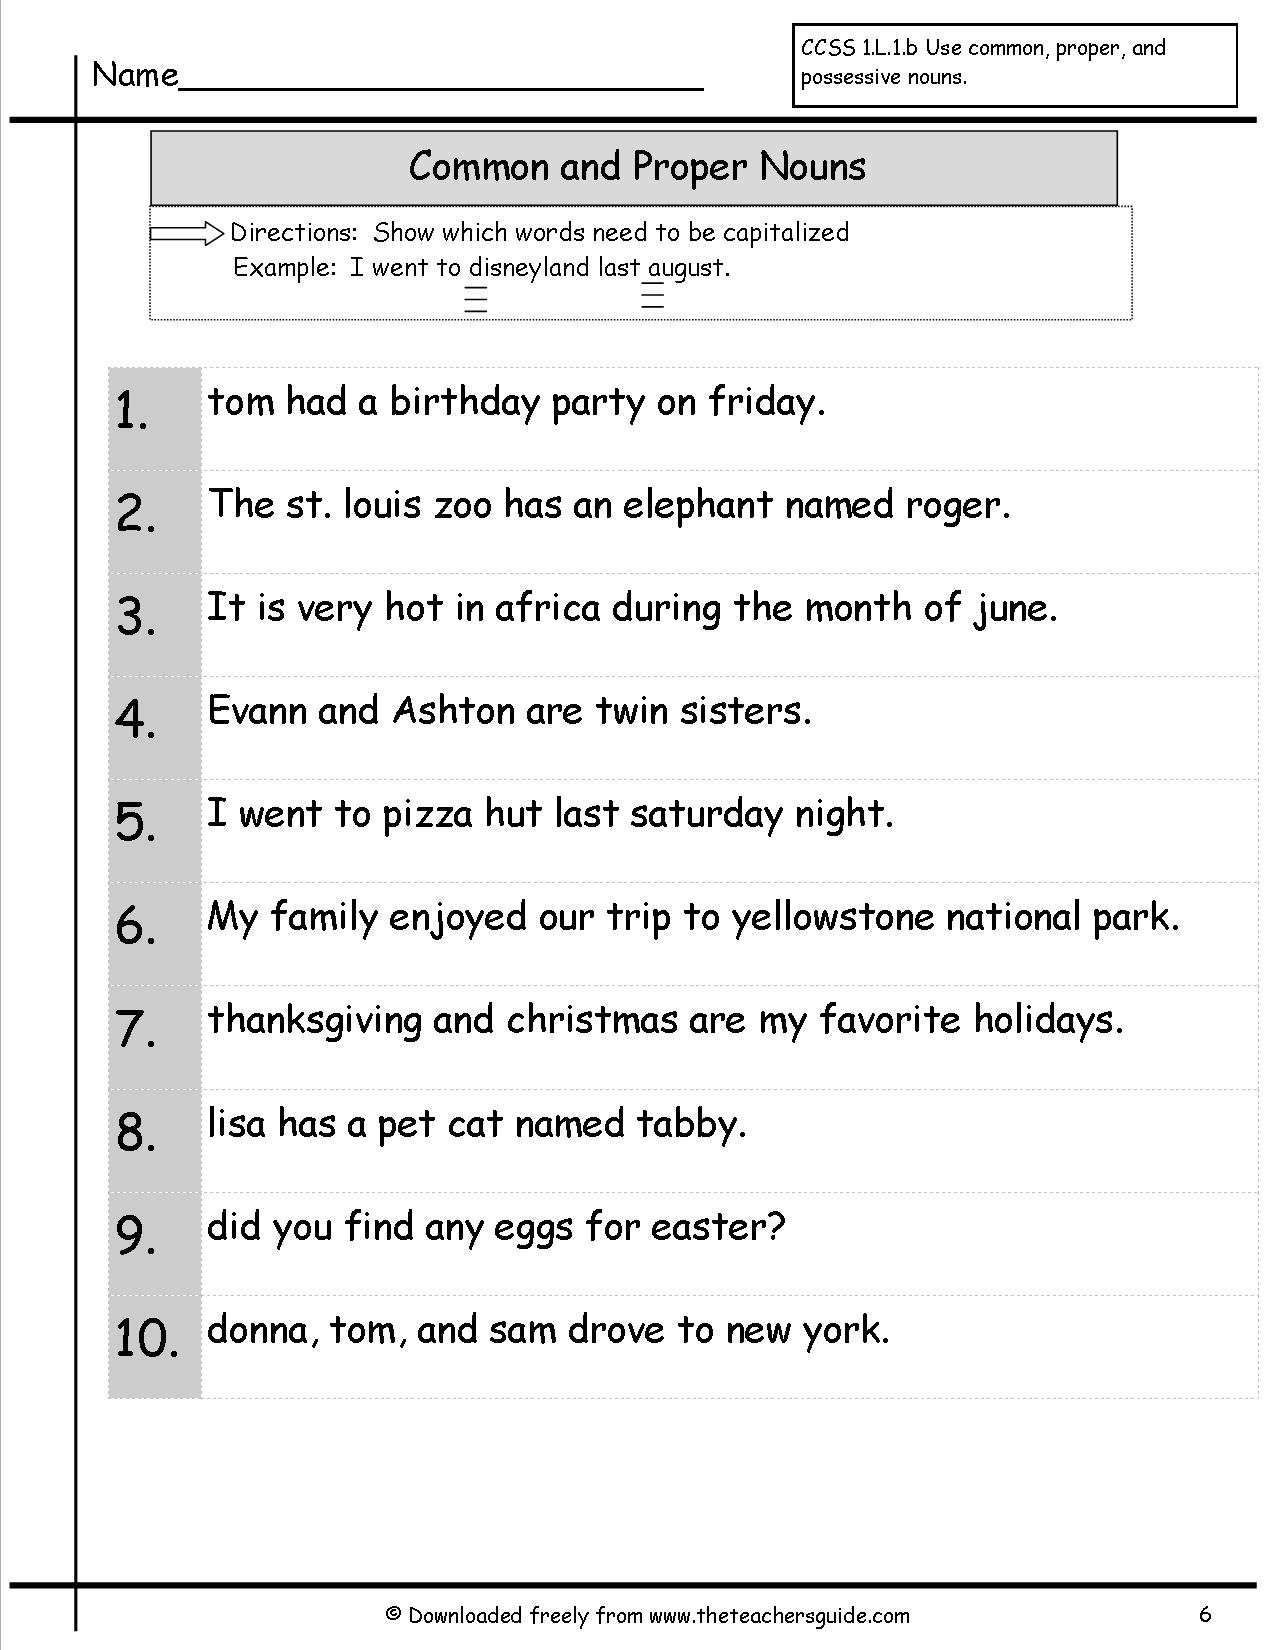 Common And Proper Nouns Worksheets From The Teacher's Guide | Common And Proper Nouns Printable Worksheets